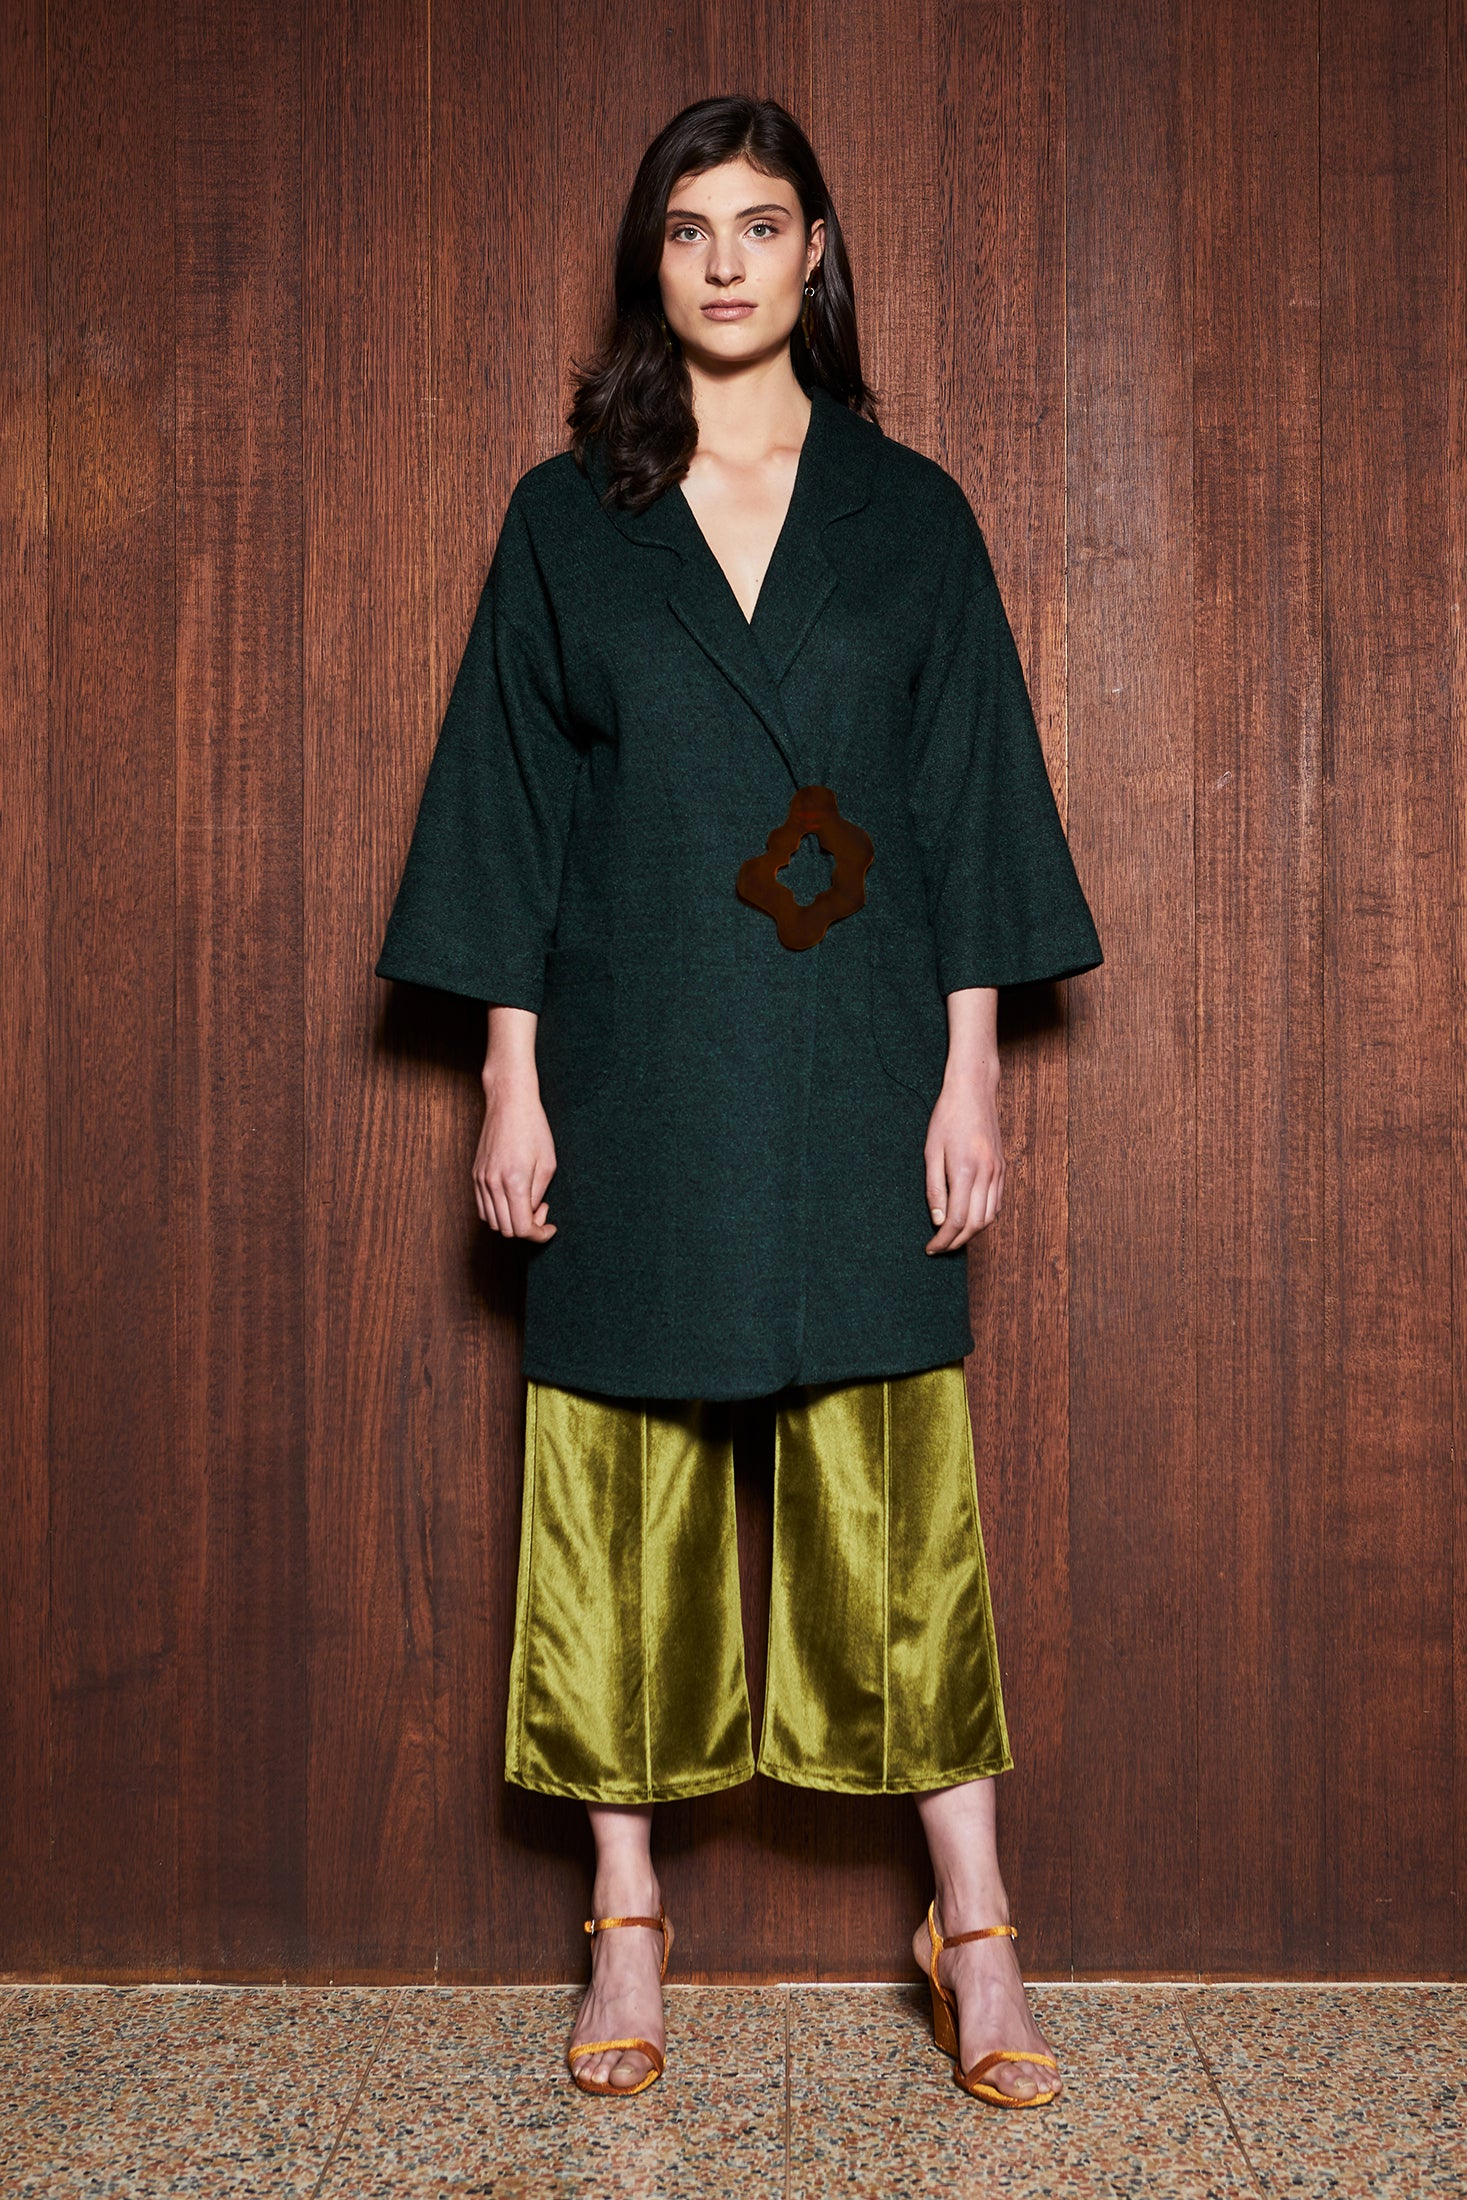 Women's Clothing in Melbourne Australia Woodland Coat Green Wool